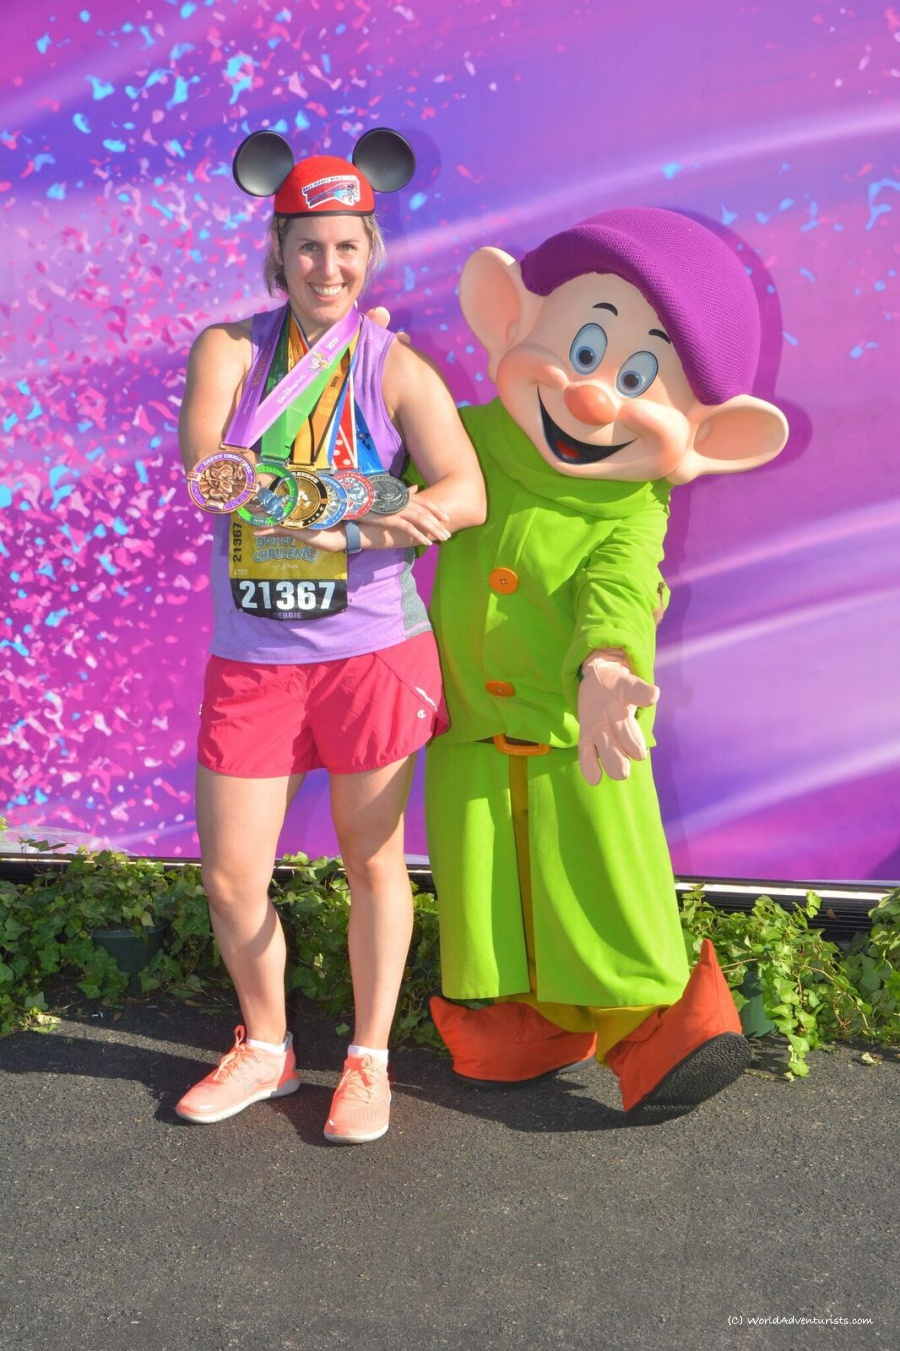 Girl displaying all the medals beside Dopey at the Dopey Challenge at Disney World